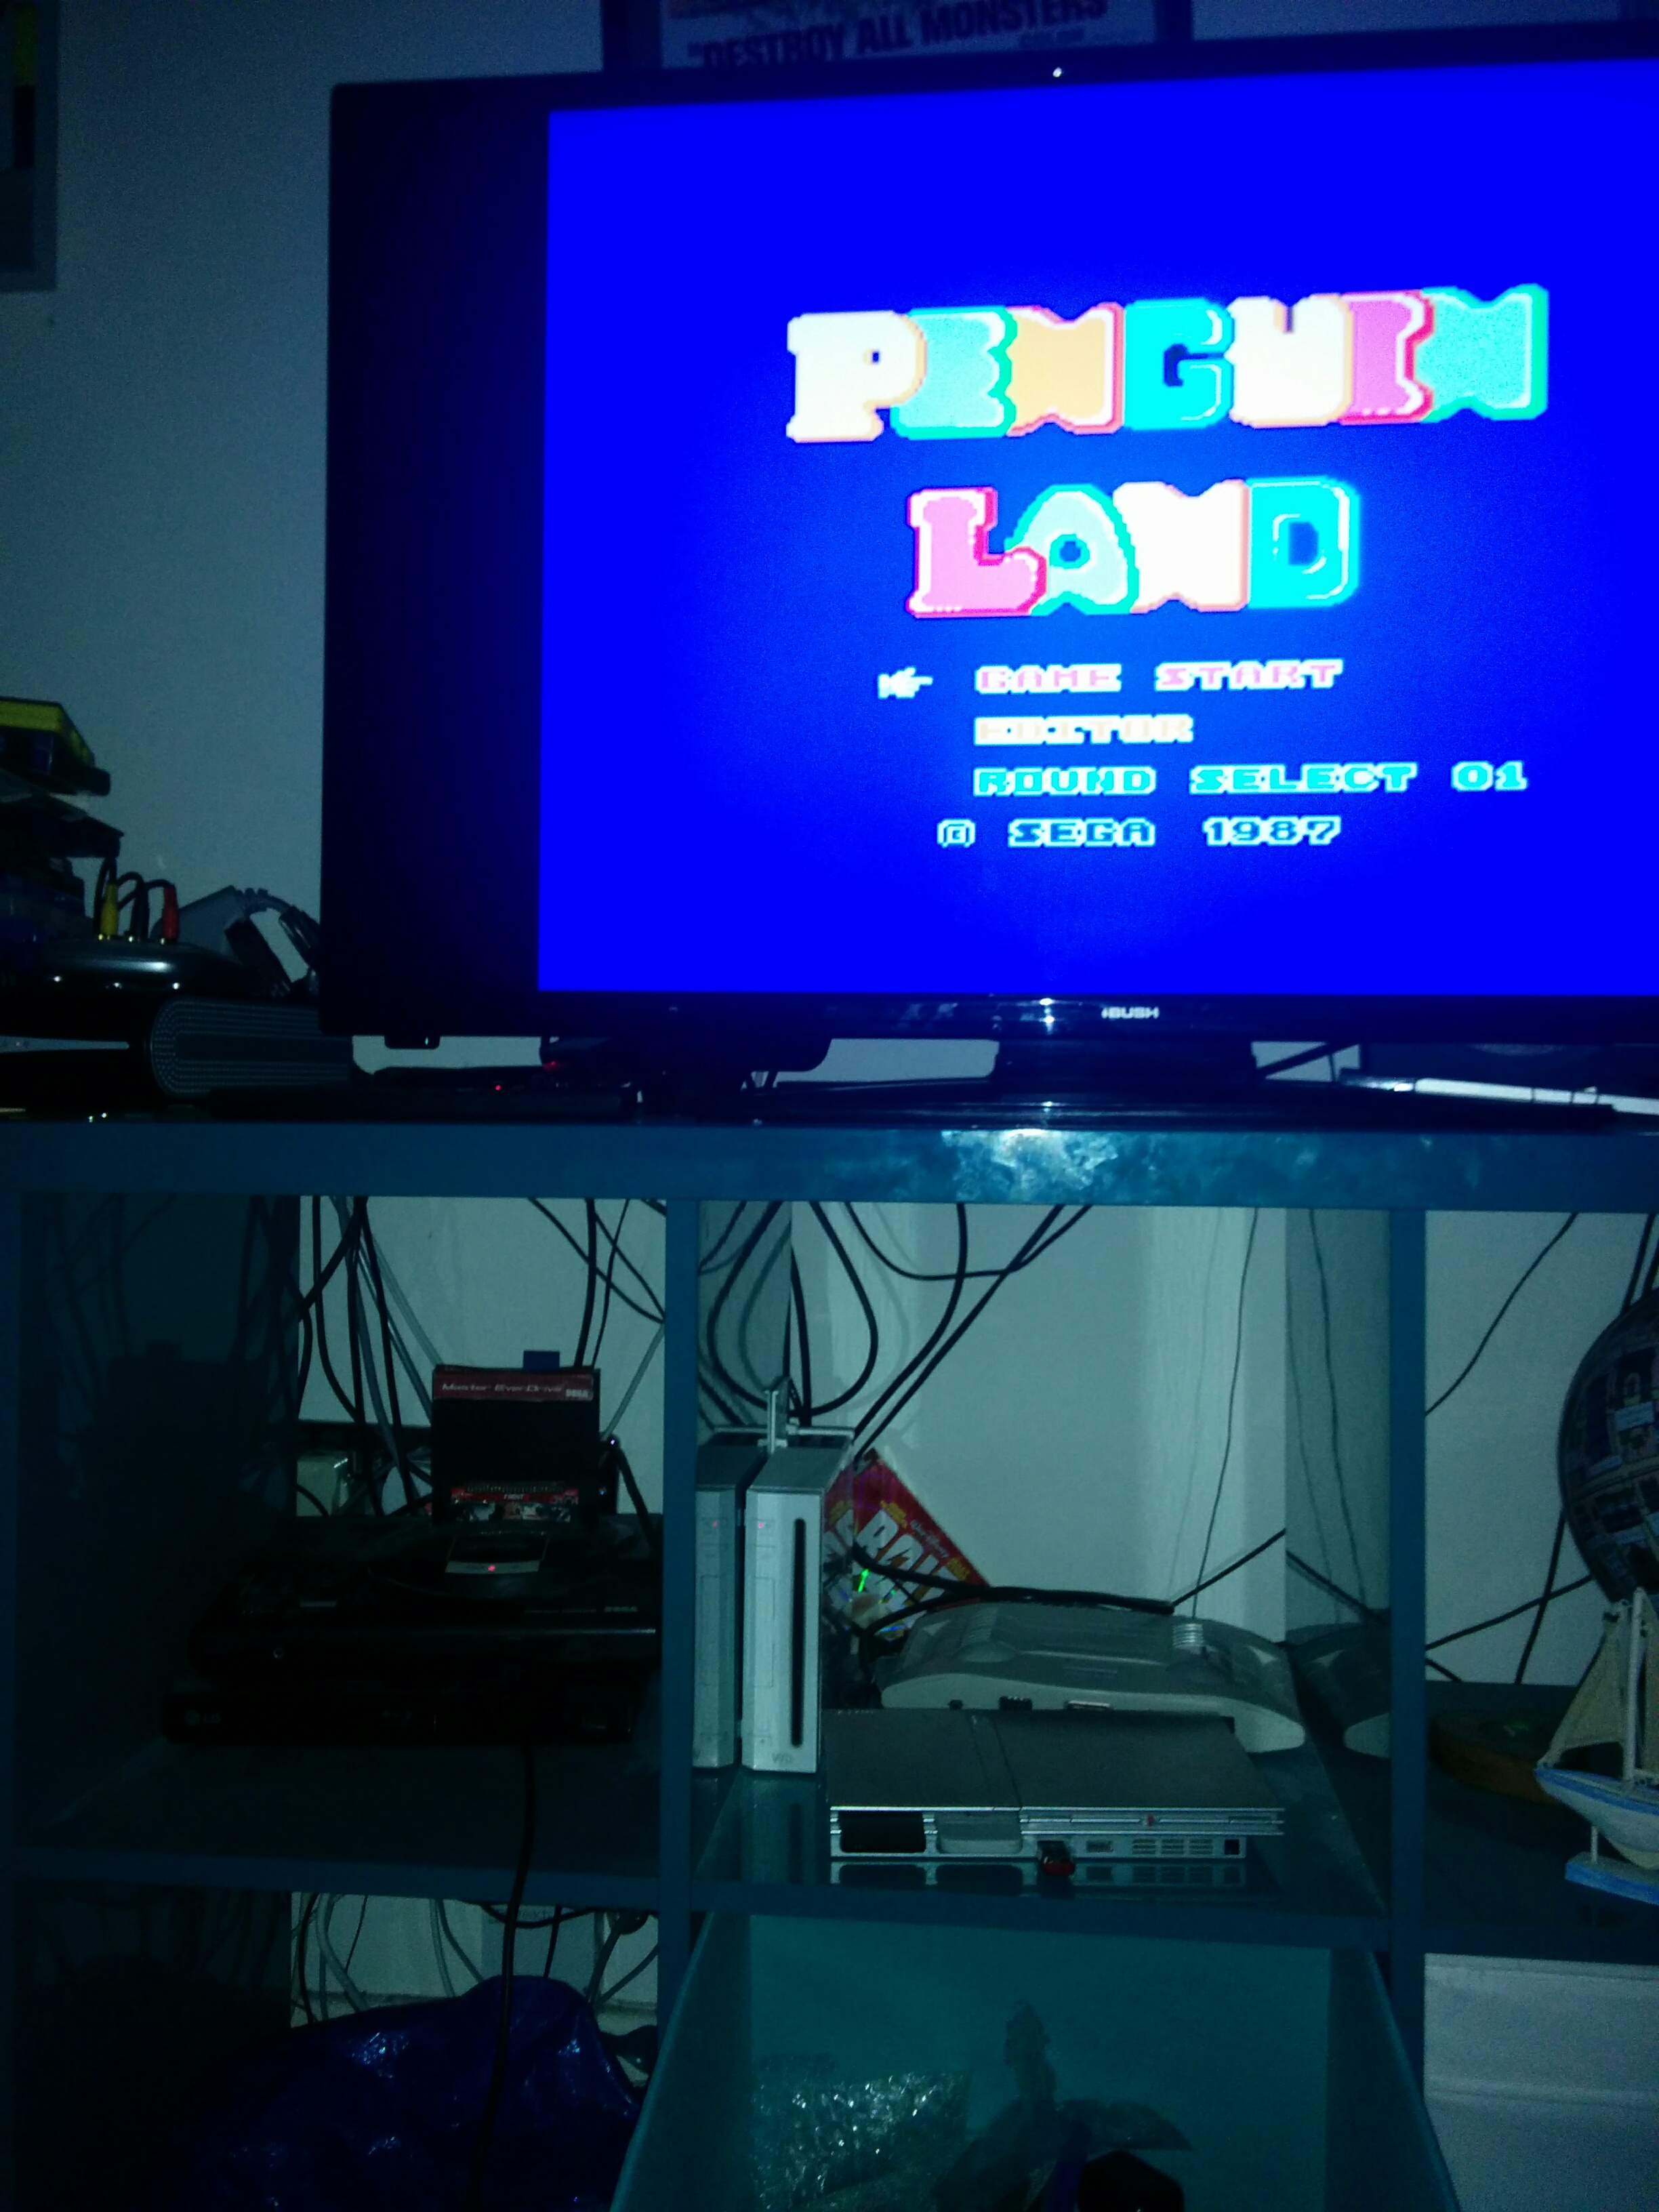 mechafatnick: Penguin Land (Sega Master System) 4,300 points on 2016-08-04 15:39:05